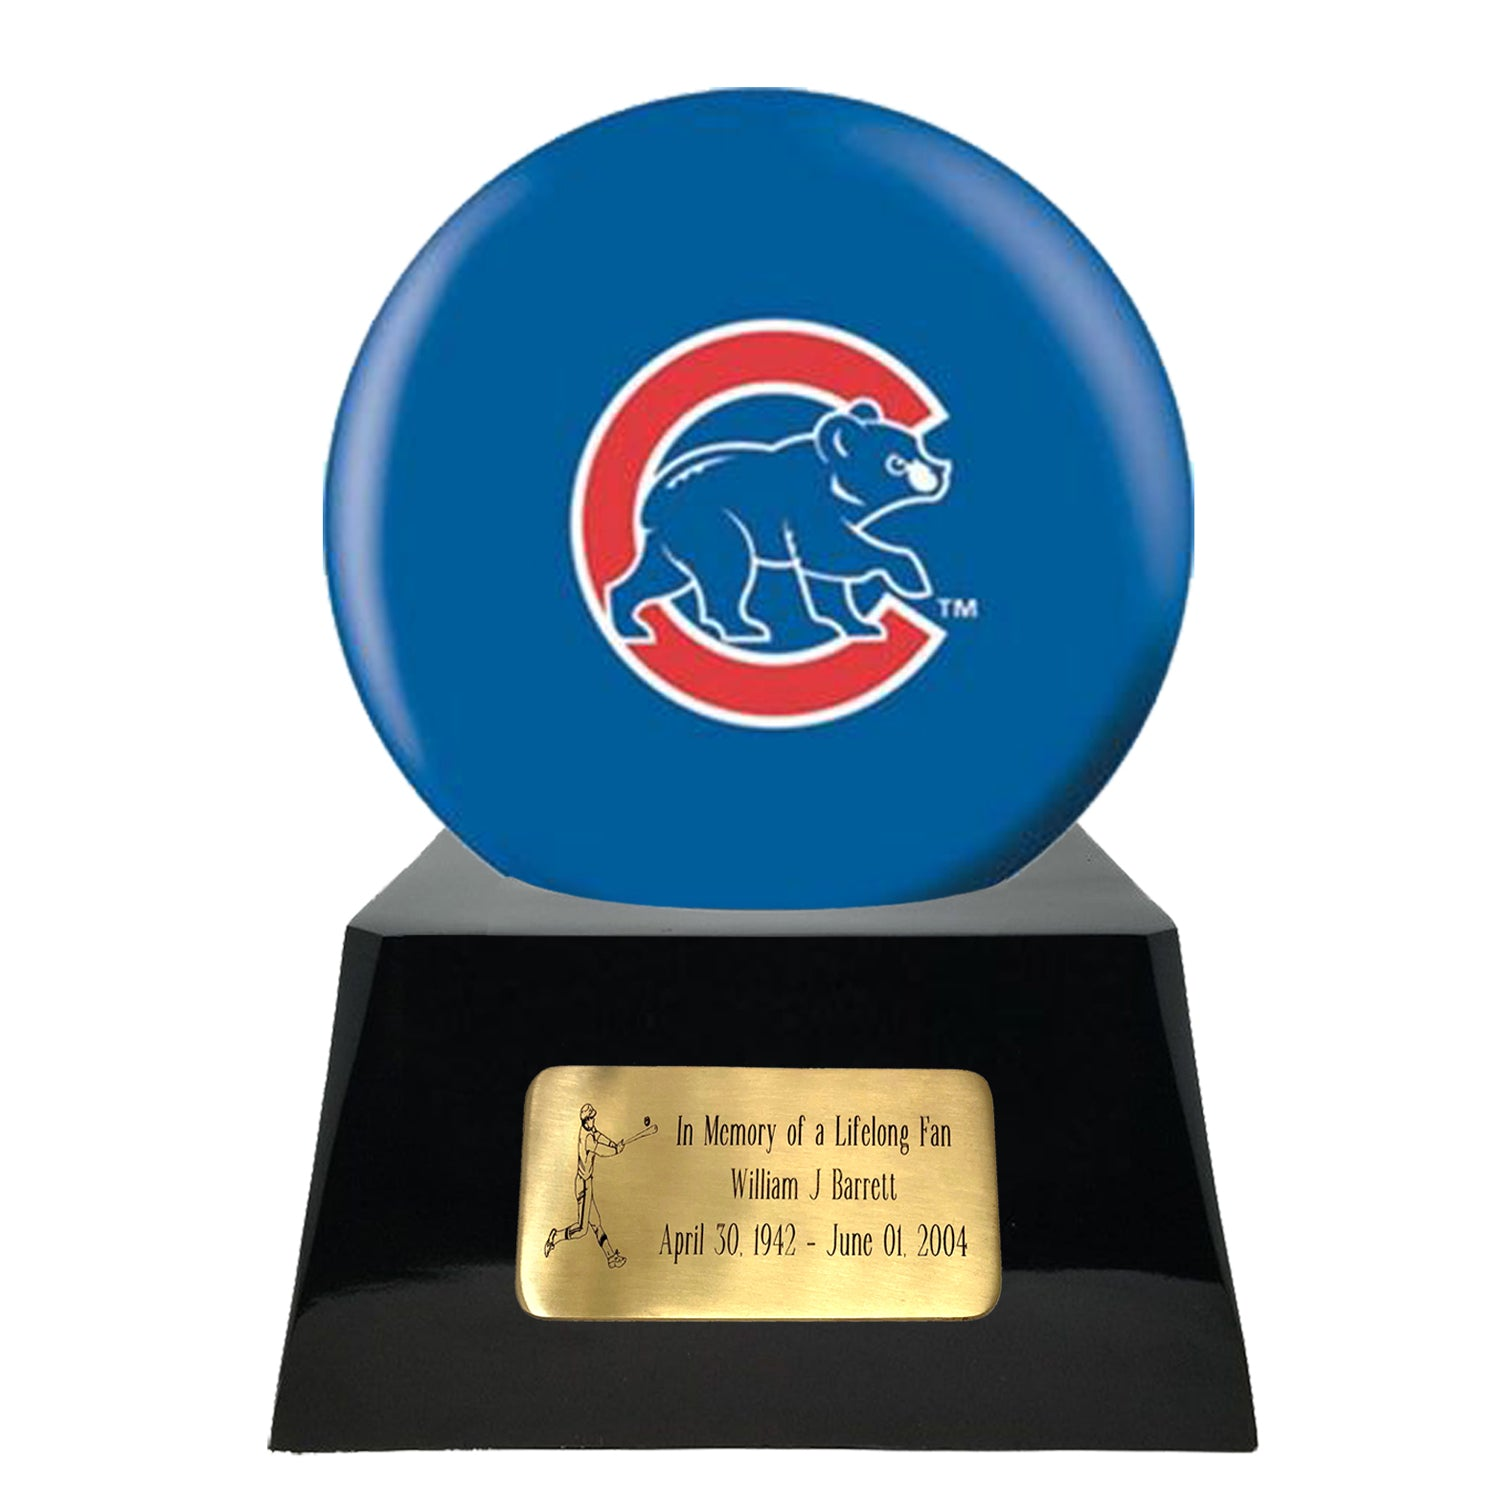 Baseball Cremation Urns For Human Ashes - Baseball Team Cremation Urn and Chicago Cubs Ball Decor with custom metal plaque - Memorials4u data-image-id=